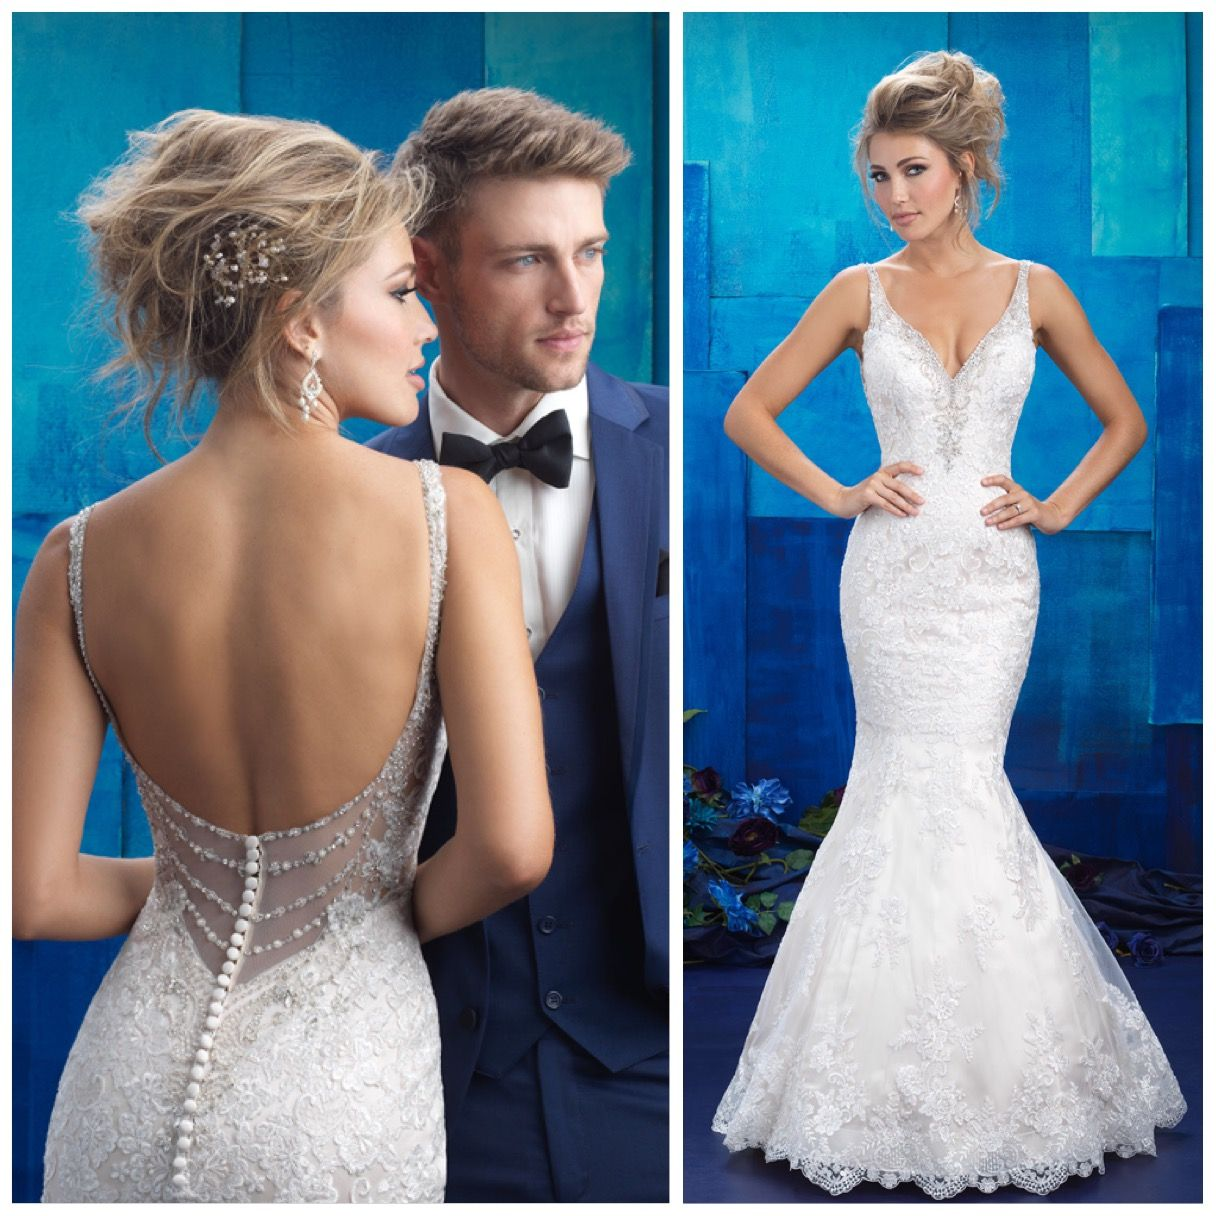 Dress Of The Week This Allure Bridals Gown Features Lace Appliques And A Gorgeous Form Fitti Allure Wedding Dresses Form Fitting Wedding Dress Wedding Dresses [ 1216 x 1216 Pixel ]